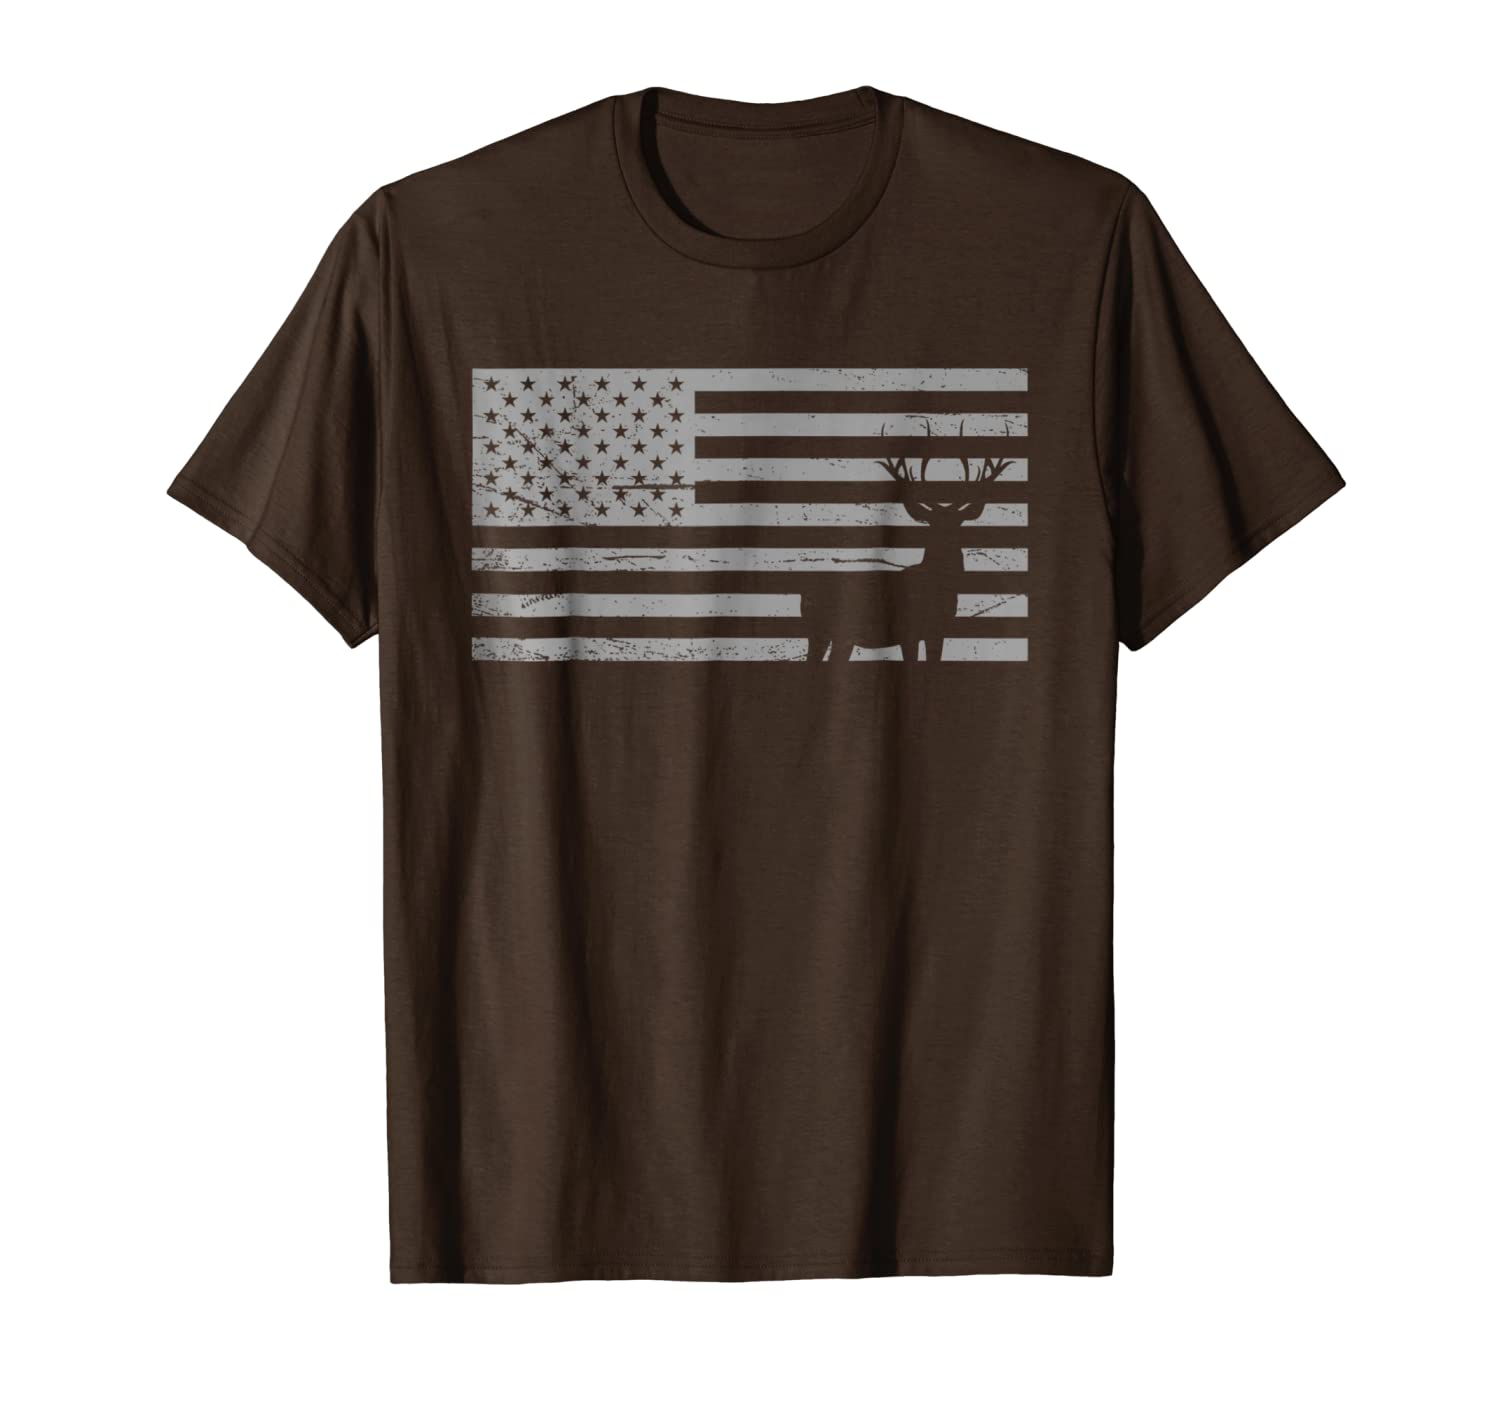 Deer Hunting And America Flag T Shirt Hunting Lover Gift Unisex Tshirt